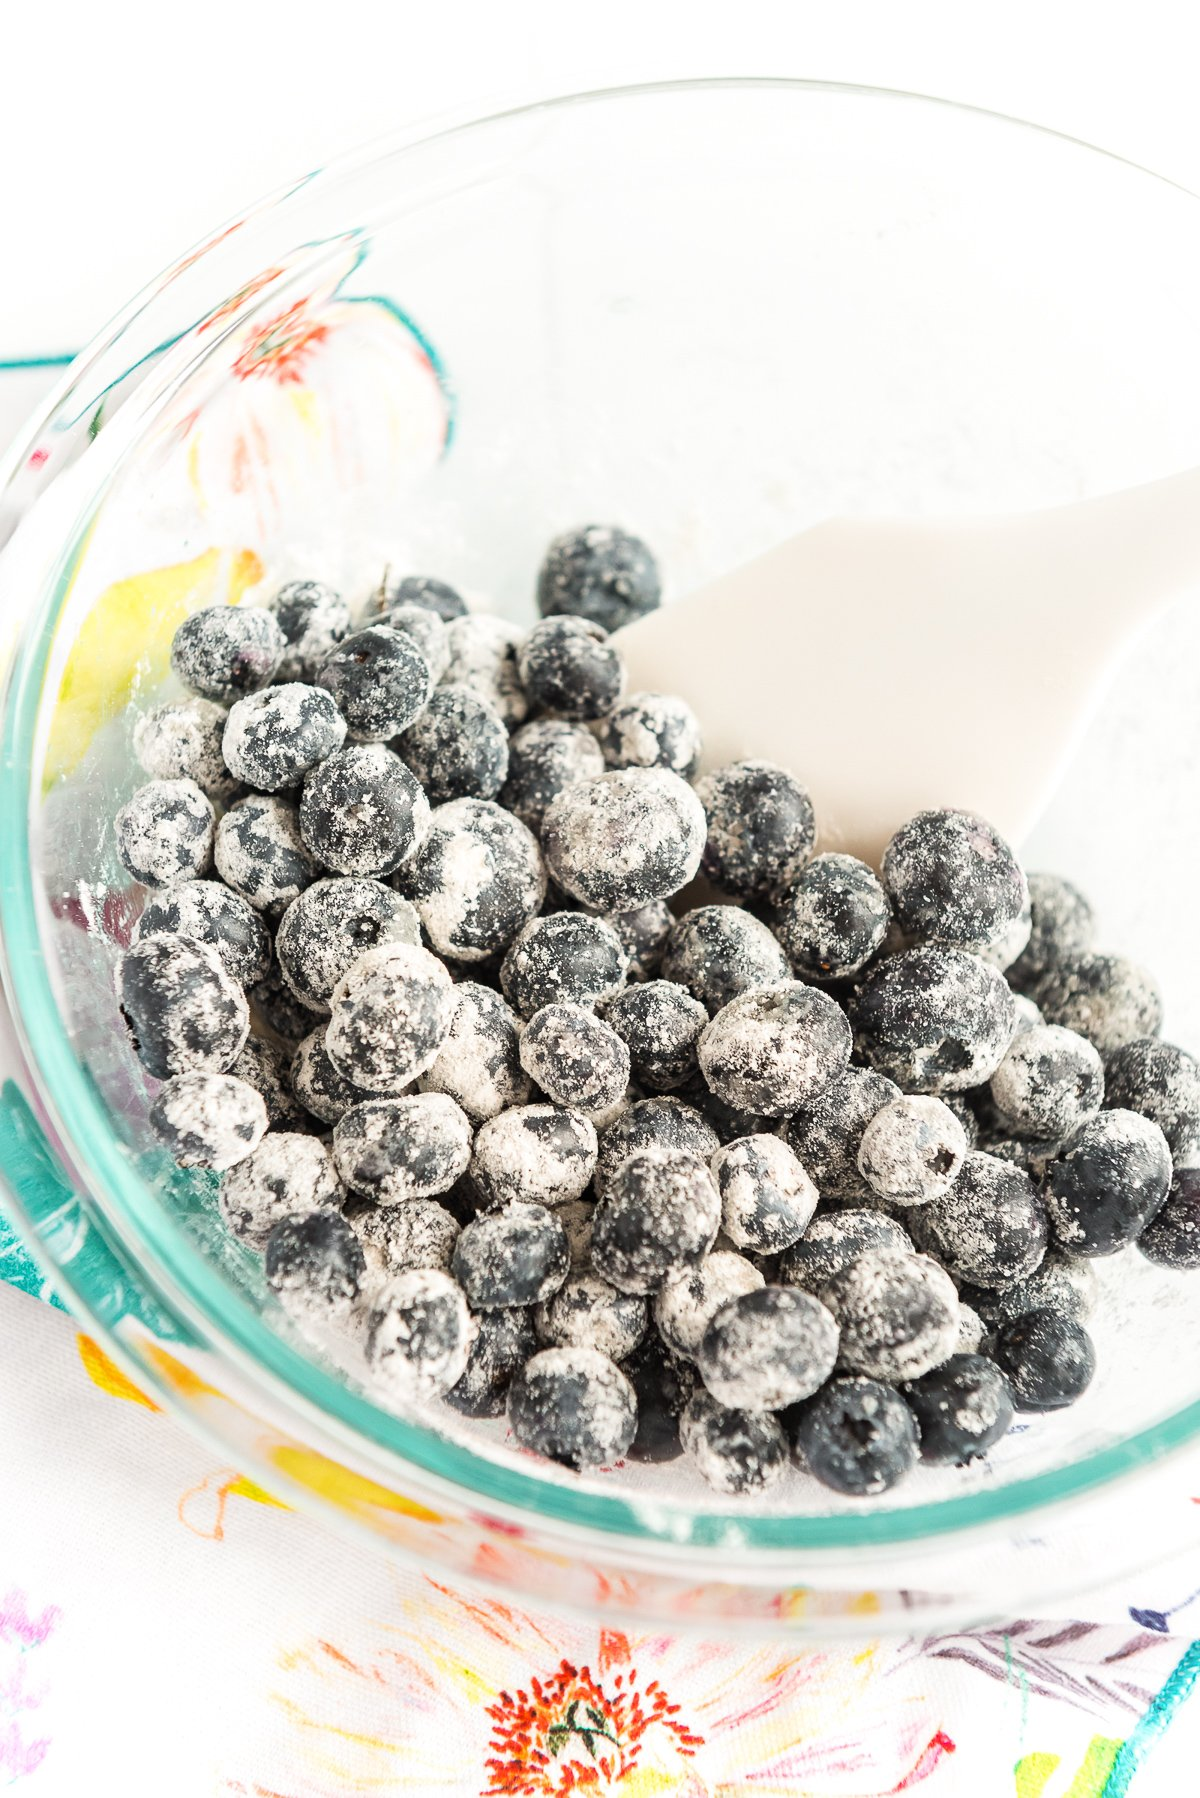 Blueberries being tossed with flour in a large glass bowl.